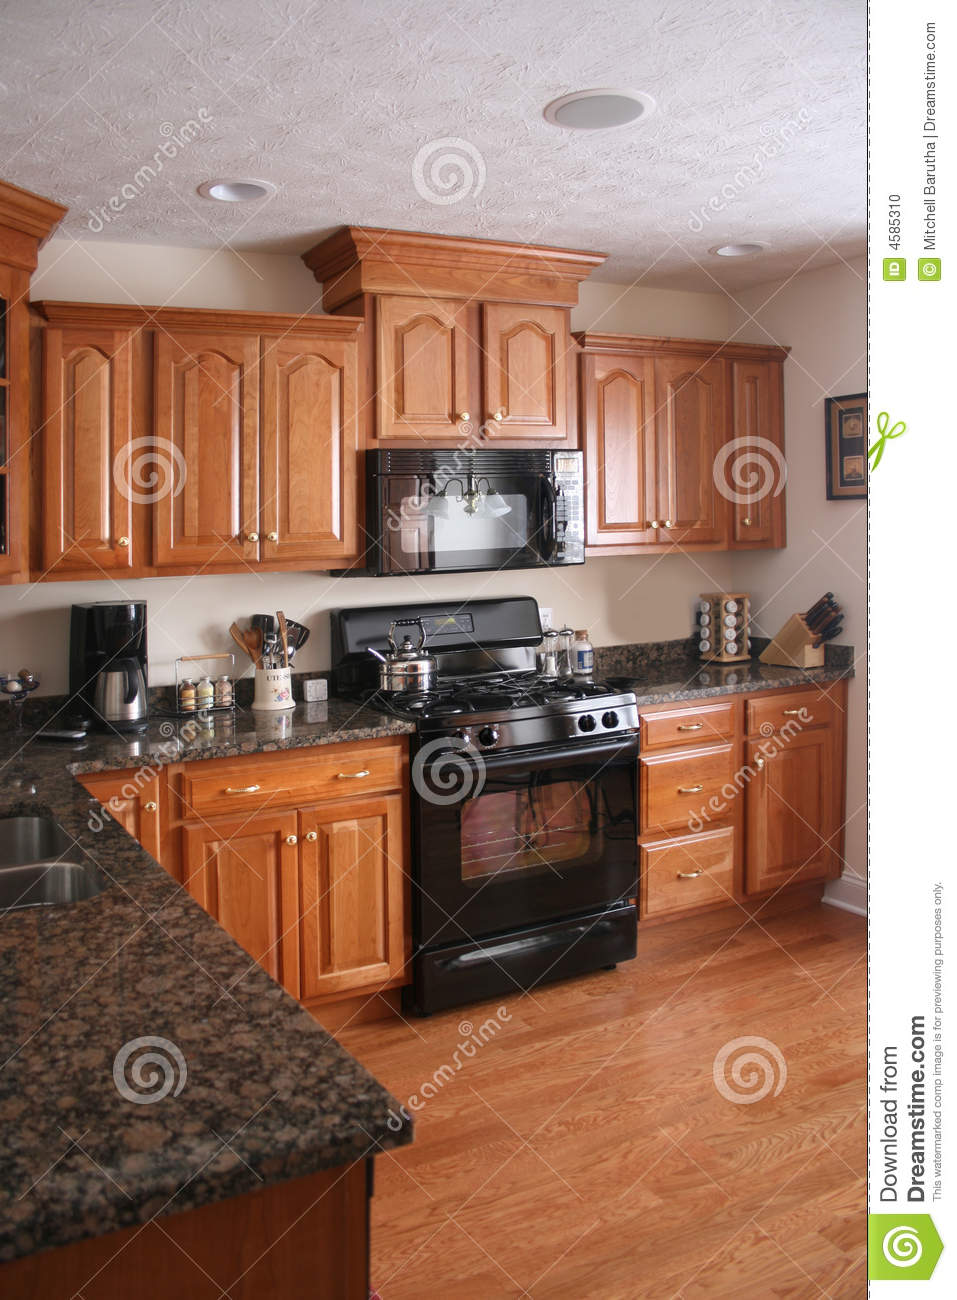 black and wood kitchen cabinets kitchen wood cabinets black stove stock photo image 4585310 12316